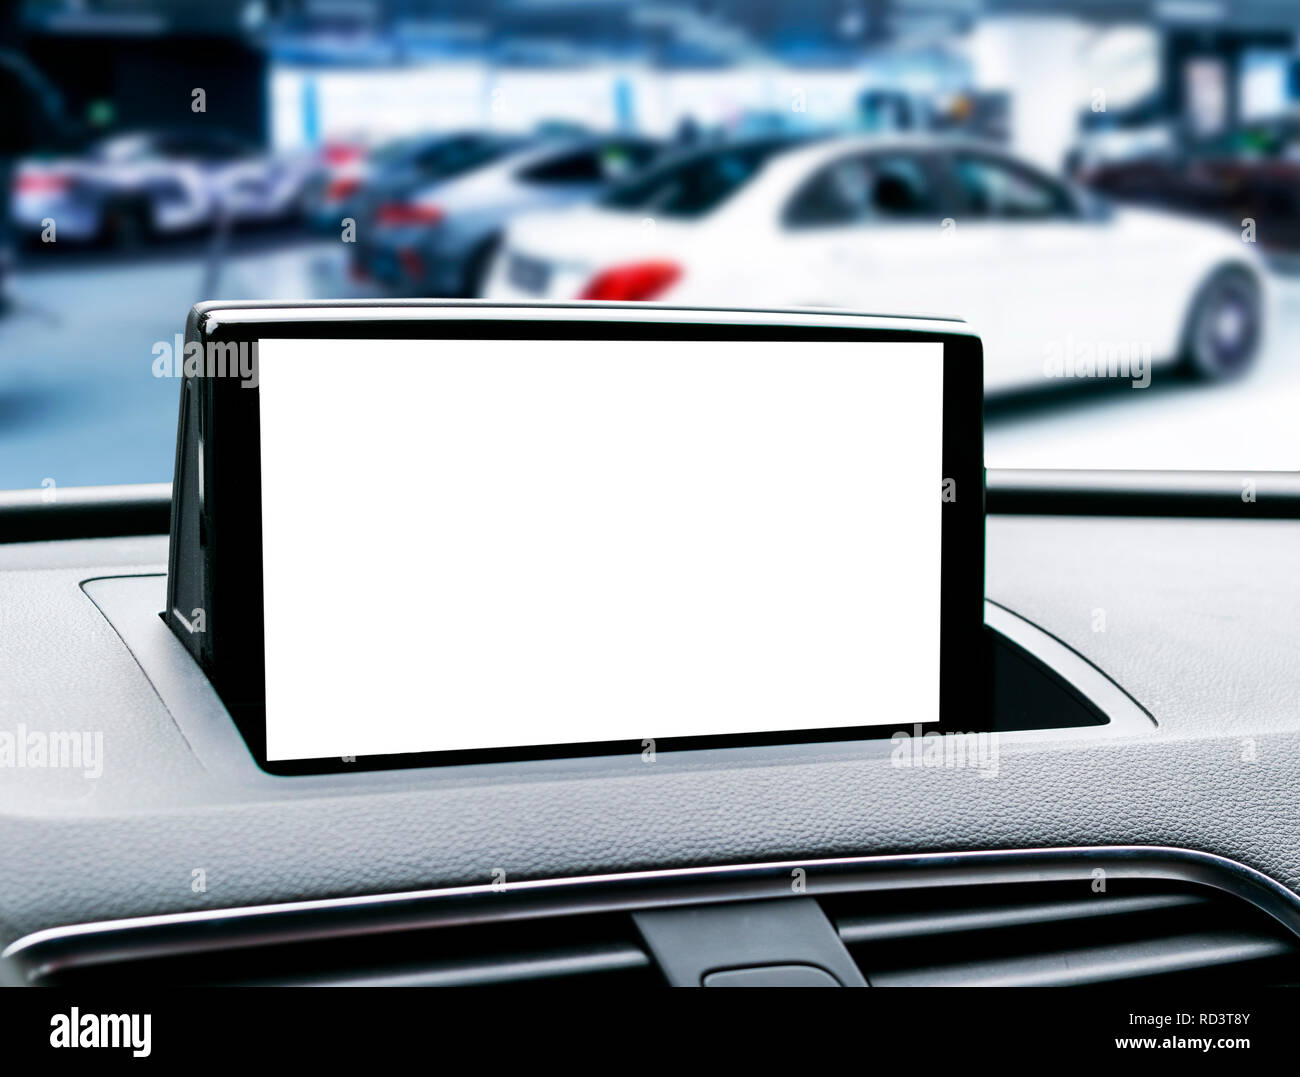 Monitor in car with isolated blank screen use for navigation maps and GPS. Isolated on white with clipping path. Car detailing. Modern car interior de Stock Photo